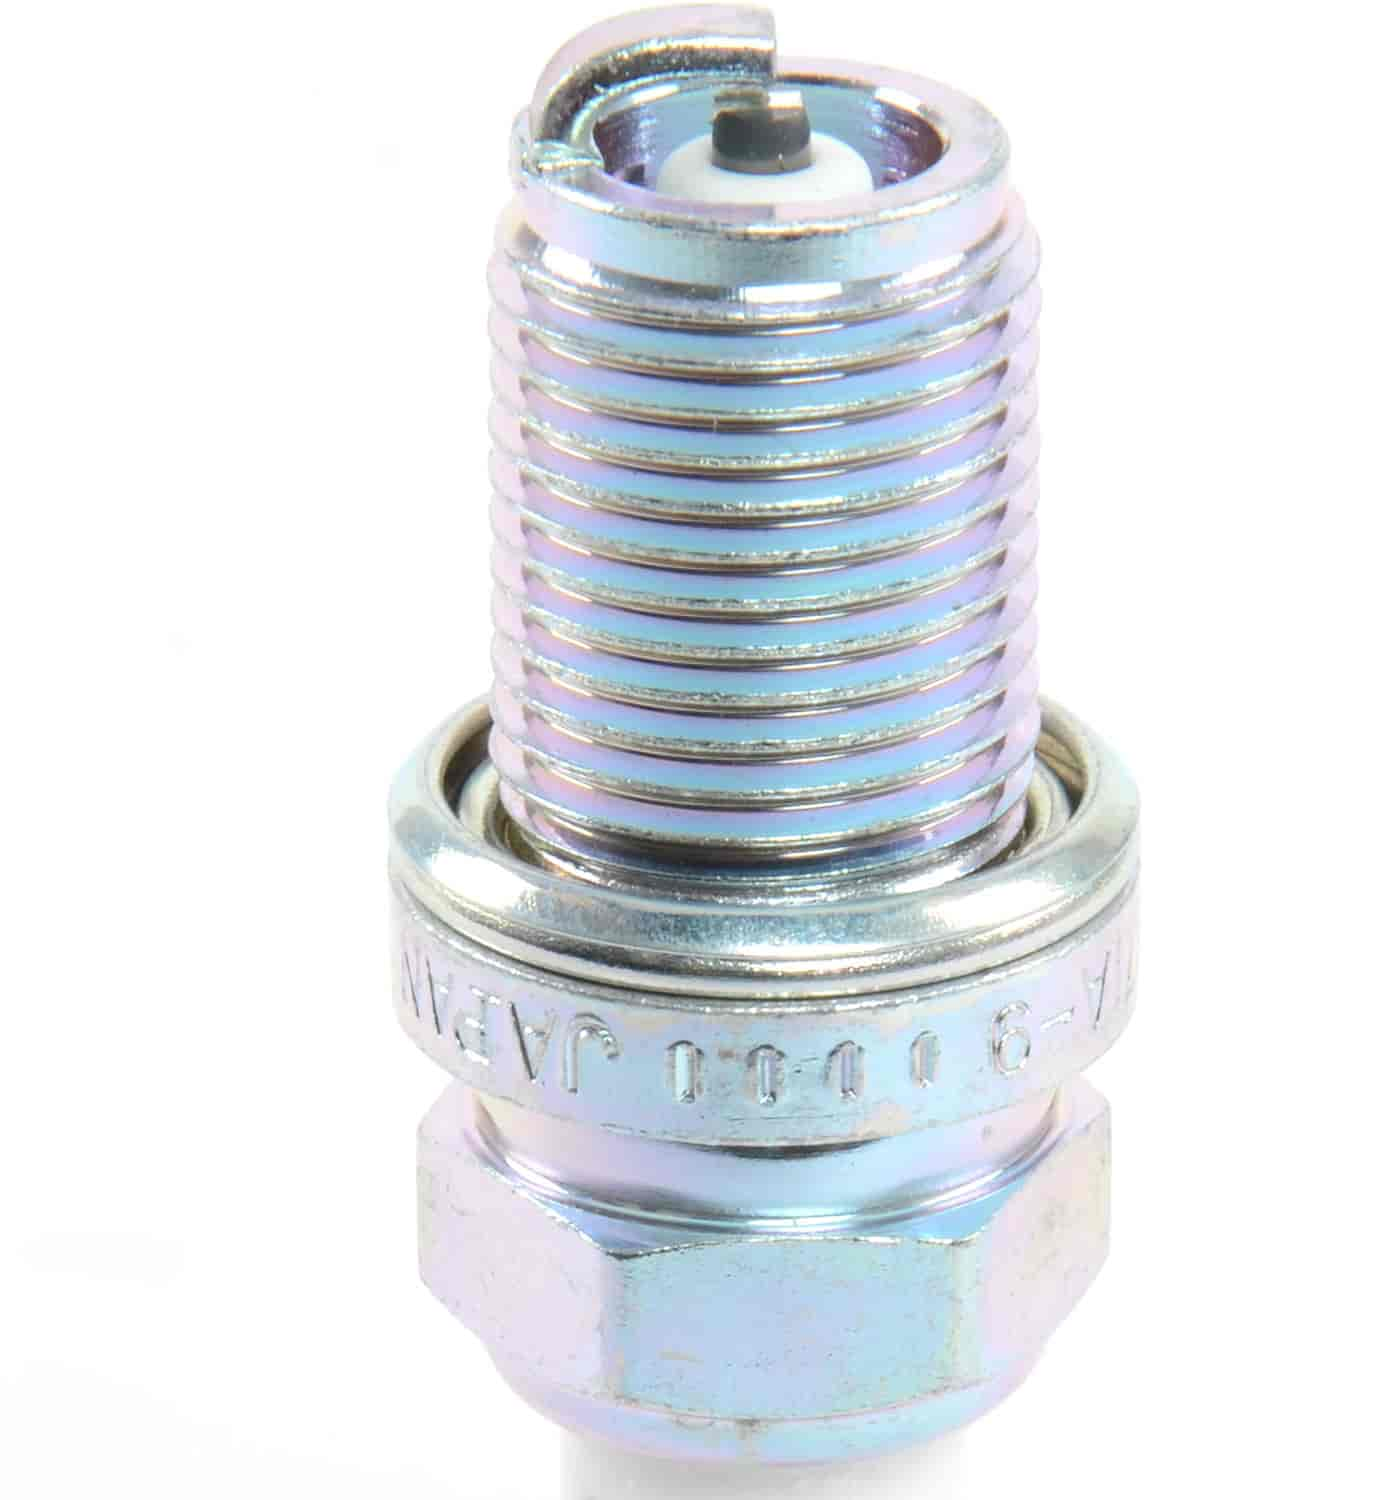 NGK Spark Plugs R5671A-9